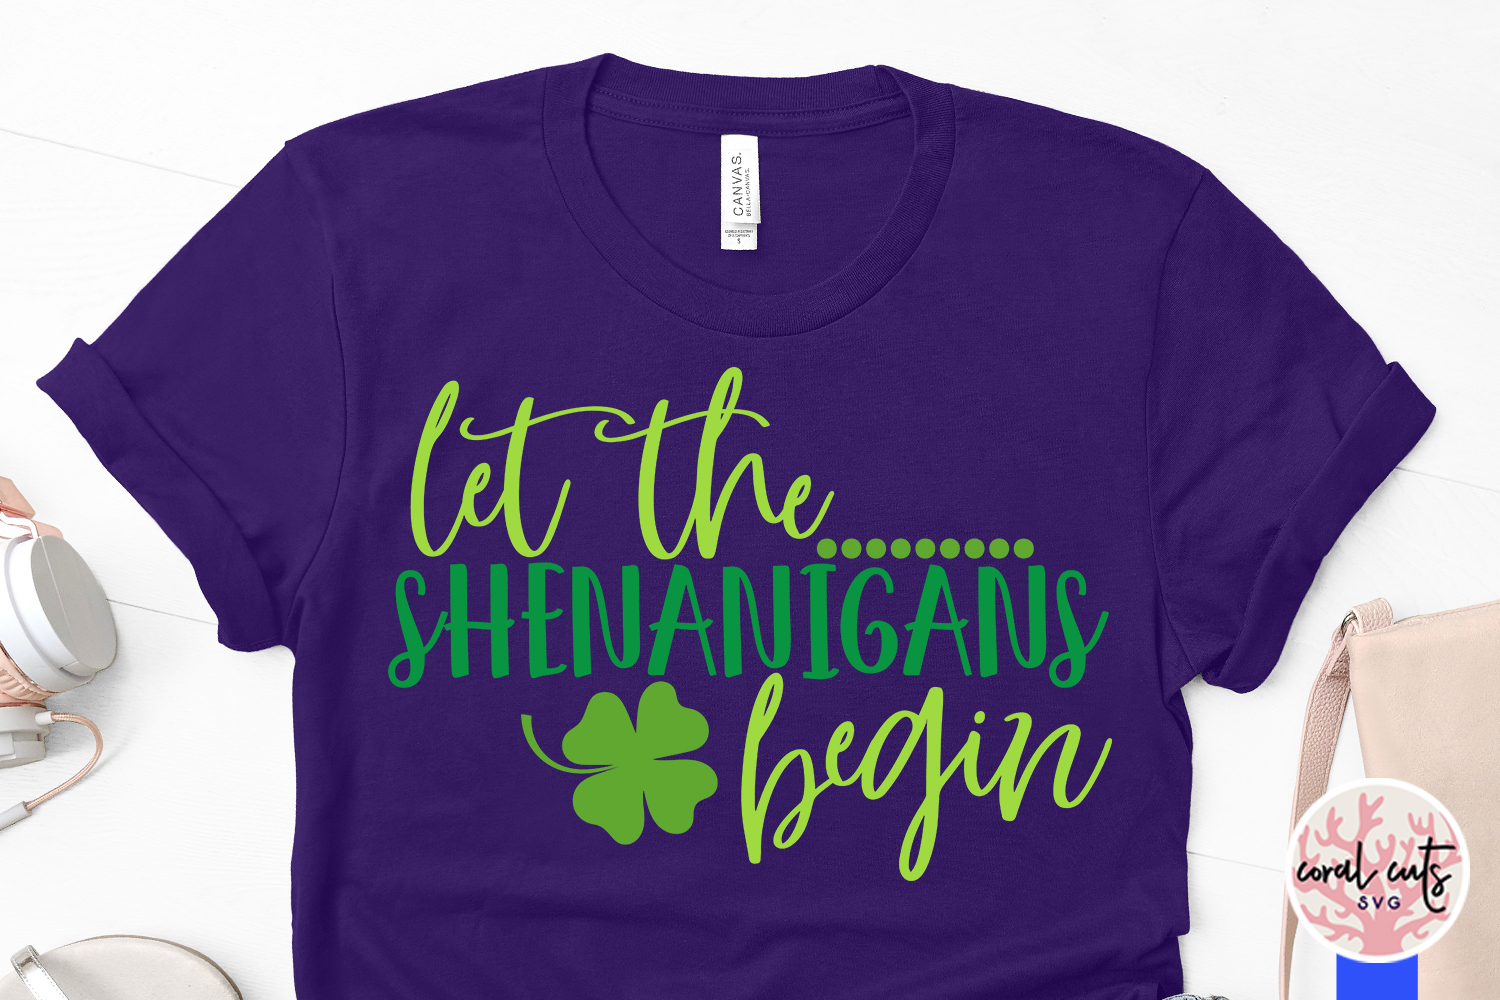 Let the shenanigans begin - St. Patrick's Day SVG EPS DXF example image 3